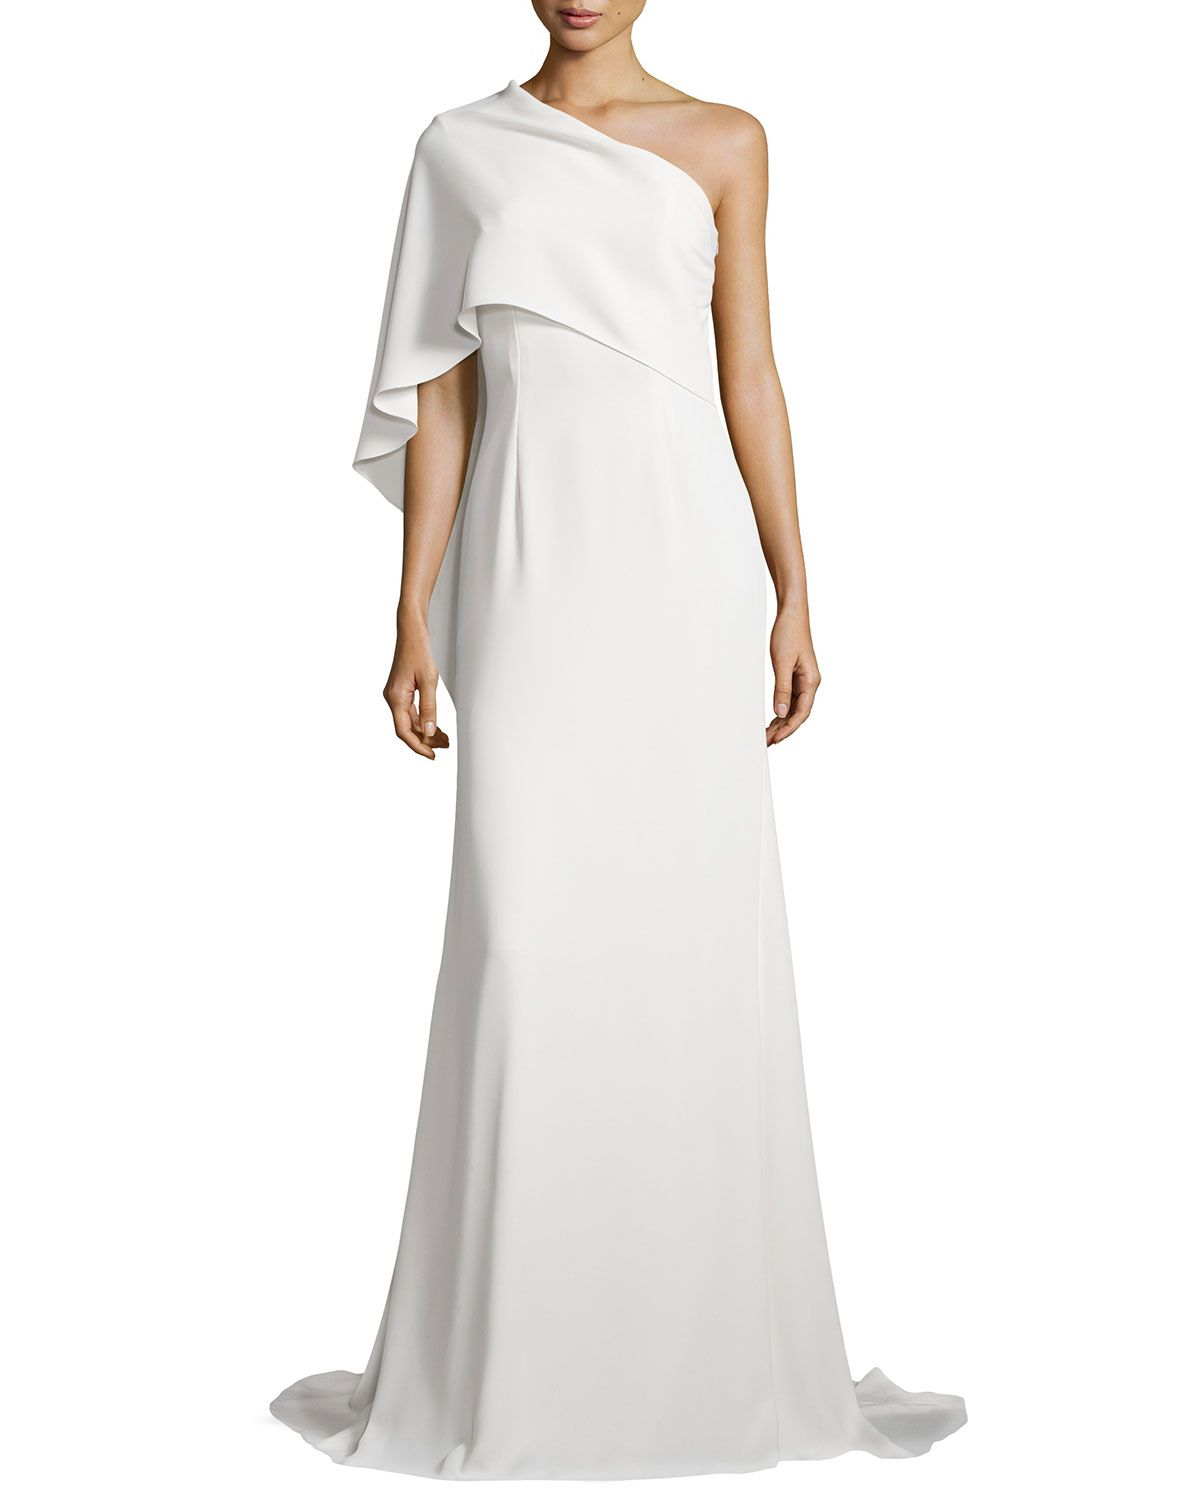 Neiman marcus dresses for weddings  OneShoulder Cape Gown Ivory  Shoulder cape Carmen marc valvo and